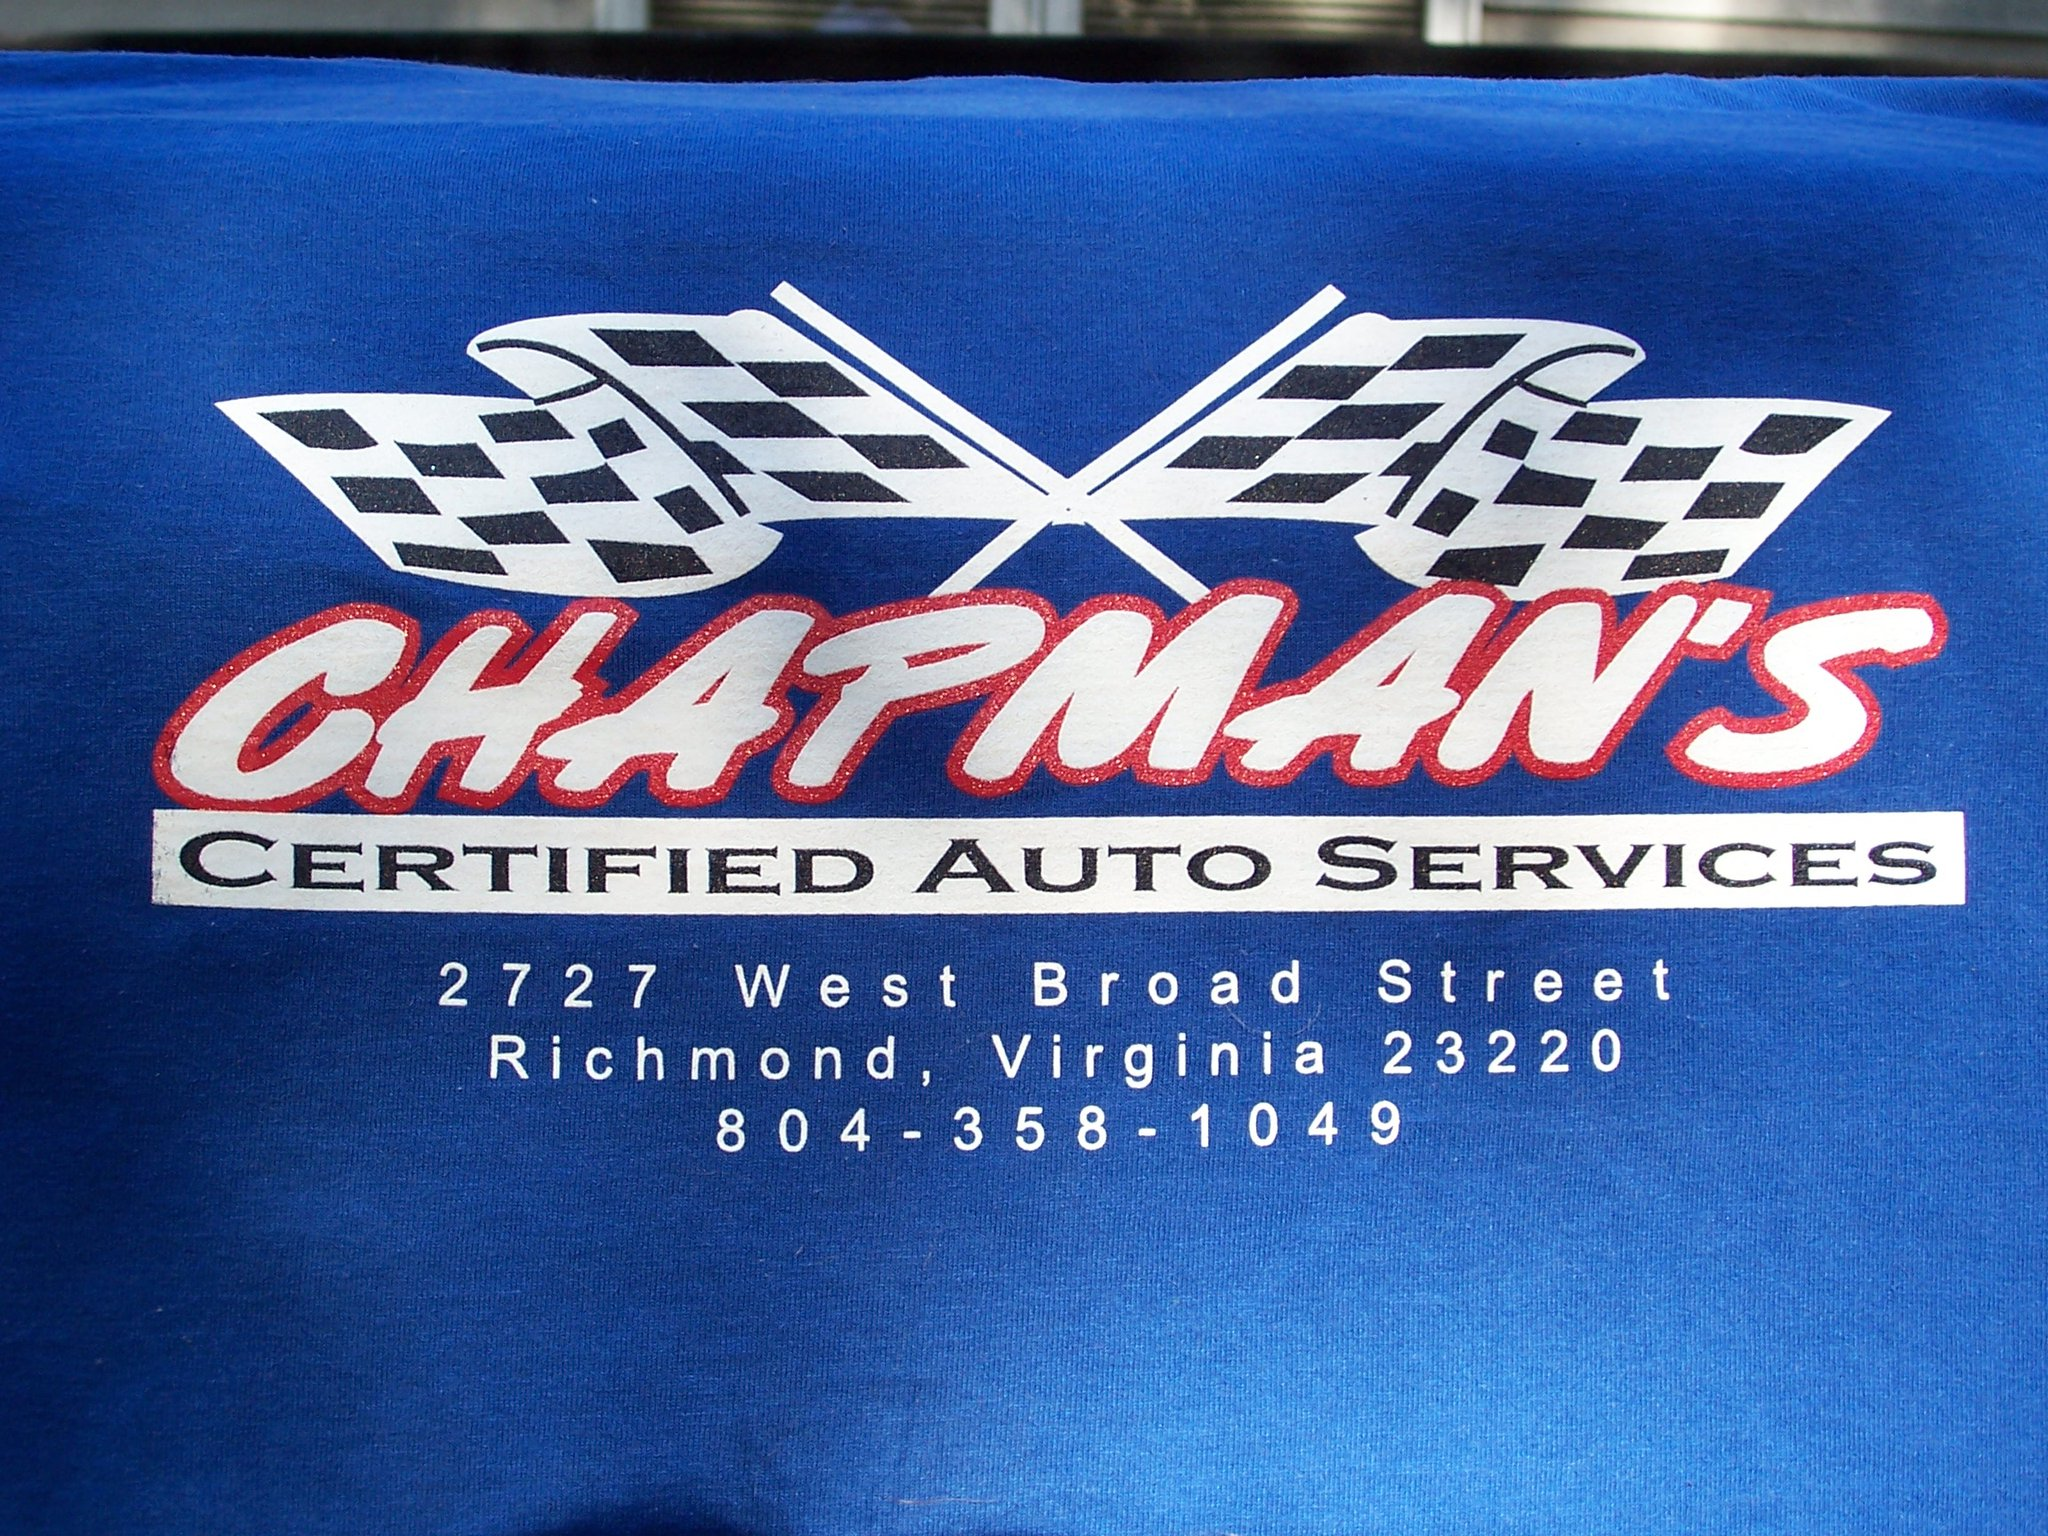 Virginia's Top Rated Local® Auto Shops Award Winner: Chapman's Certified Auto Service, LLC